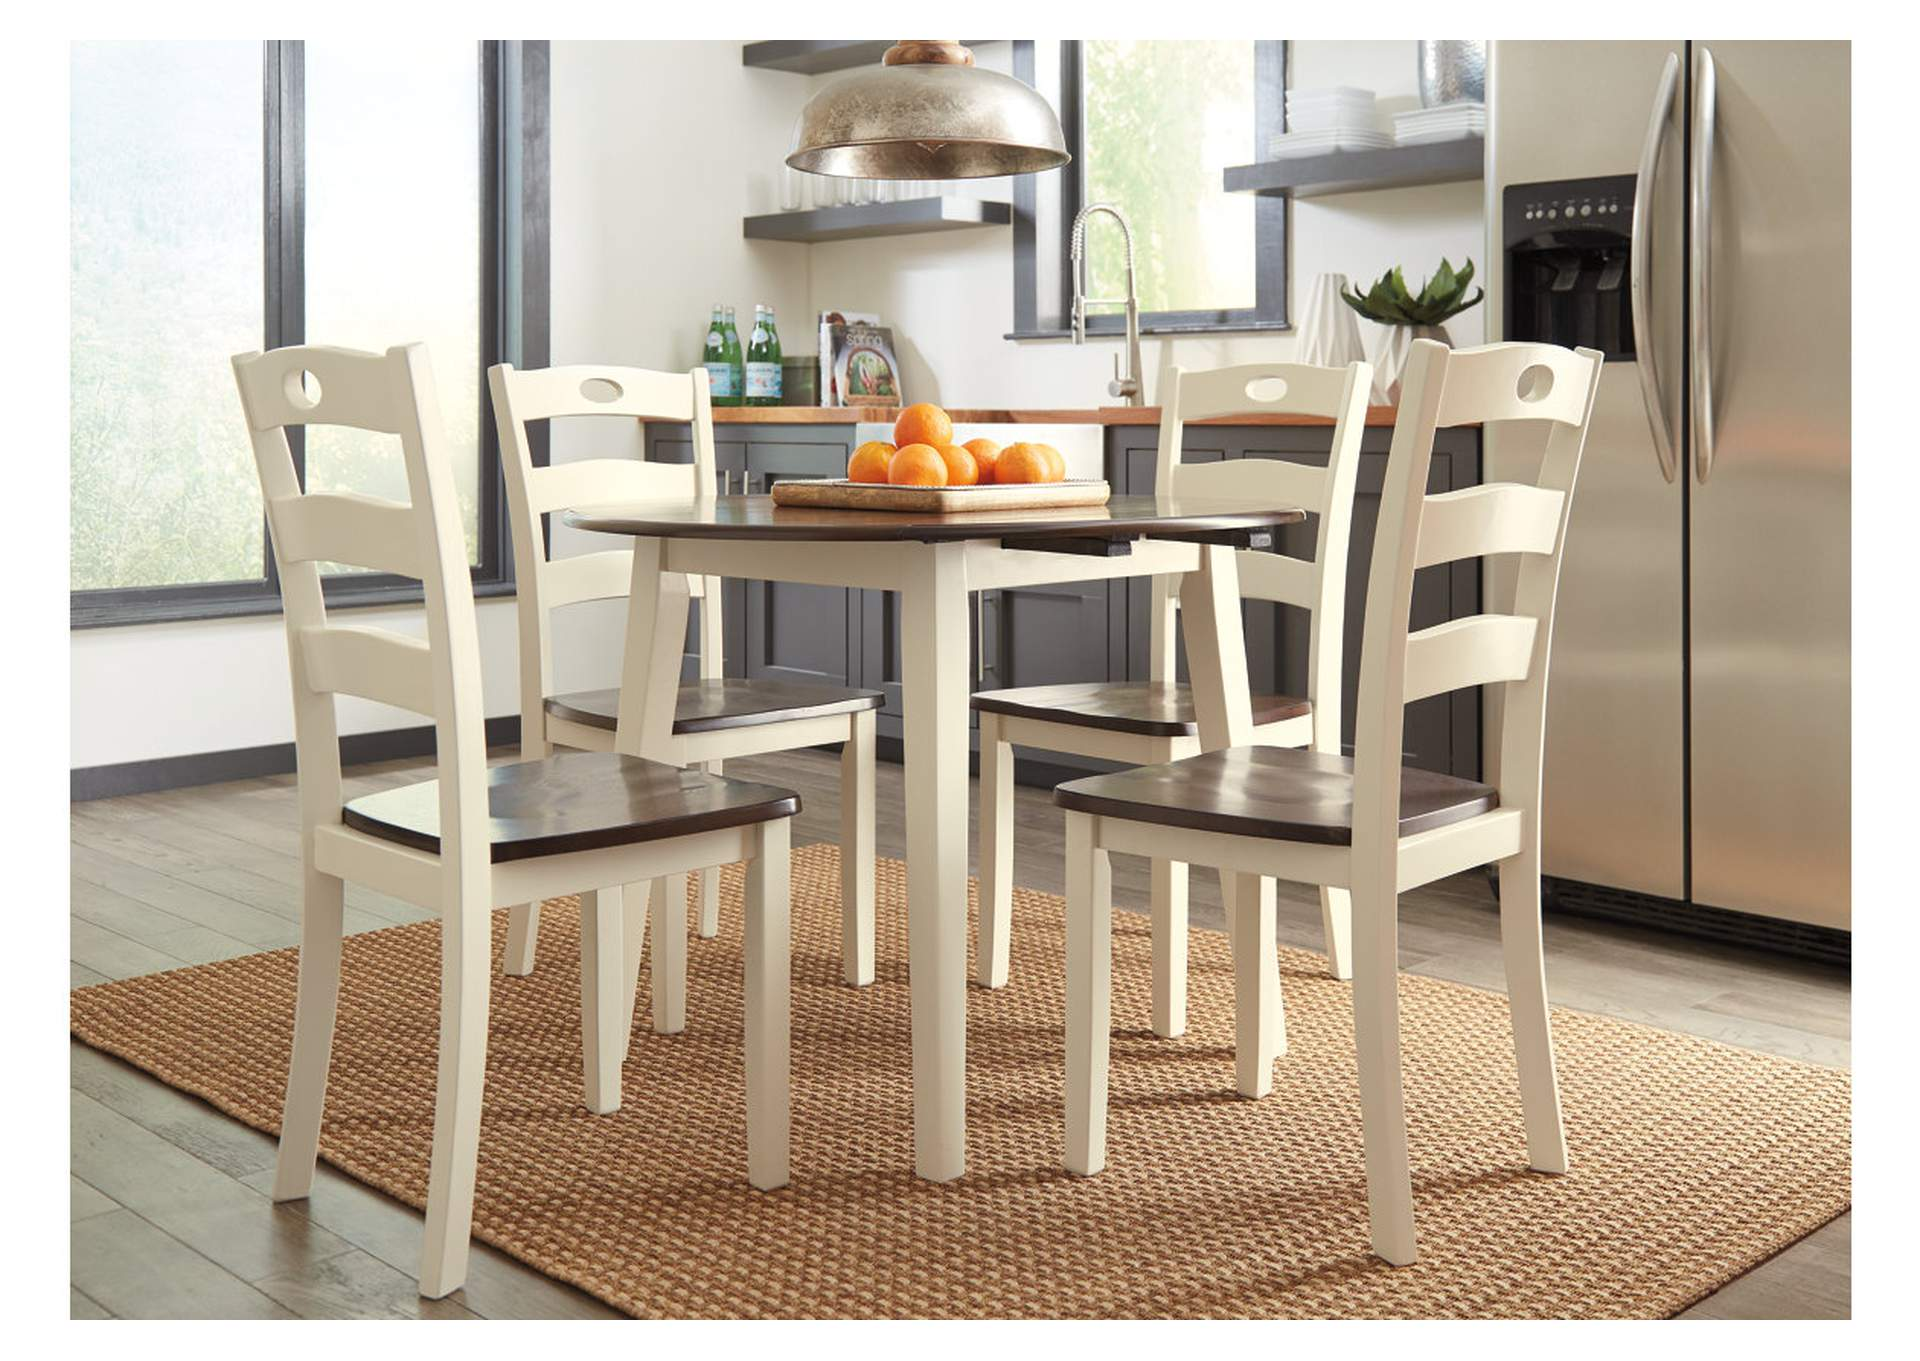 Woodanville White/Brown Round Dining Room Drop Leaf Table,Direct To Consumer Express